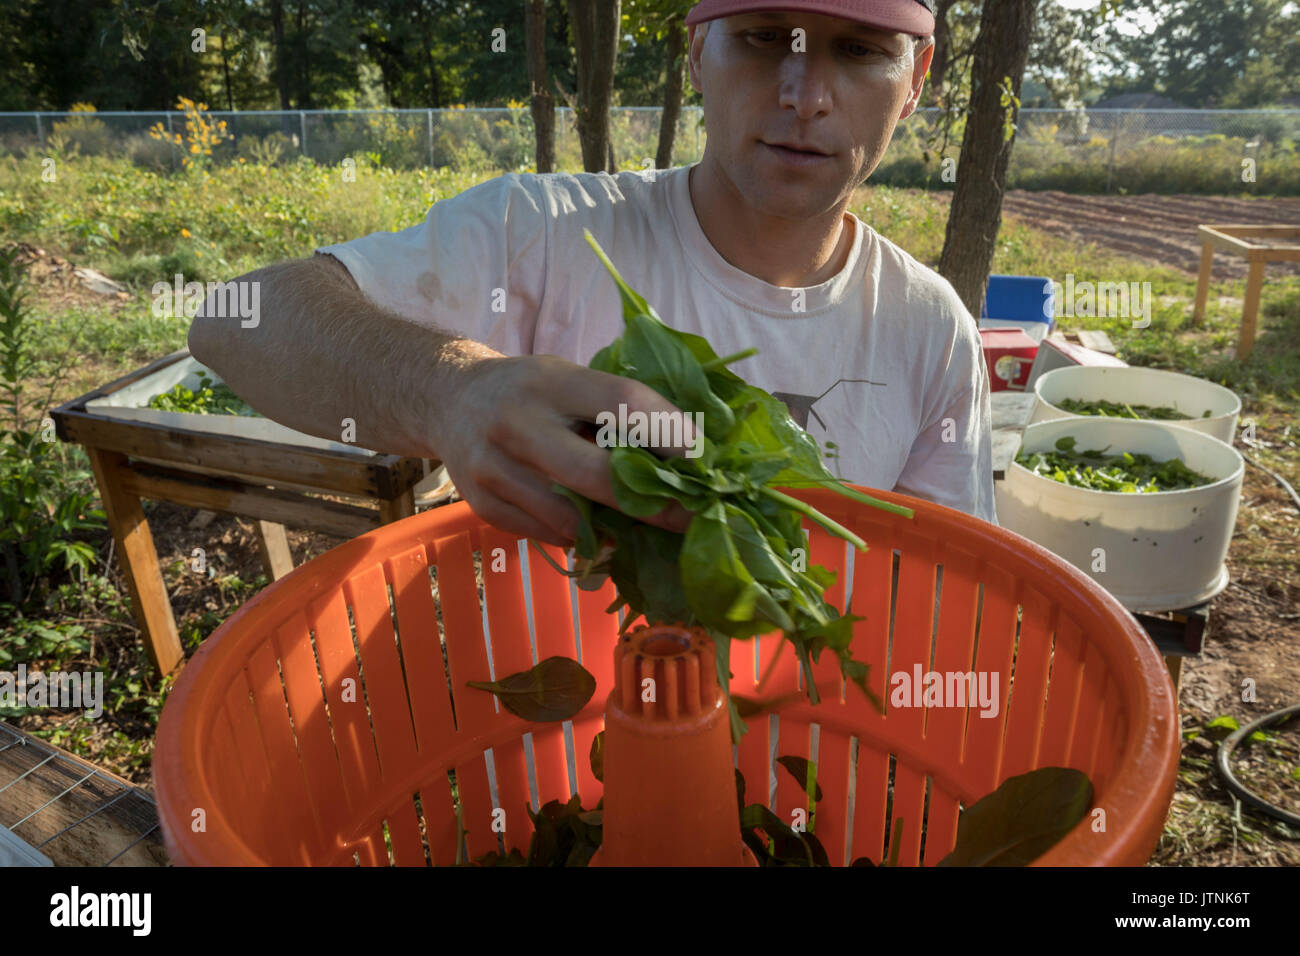 Harvesting Spinach Stock Photos Harvesting Spinach Stock Images Alamy